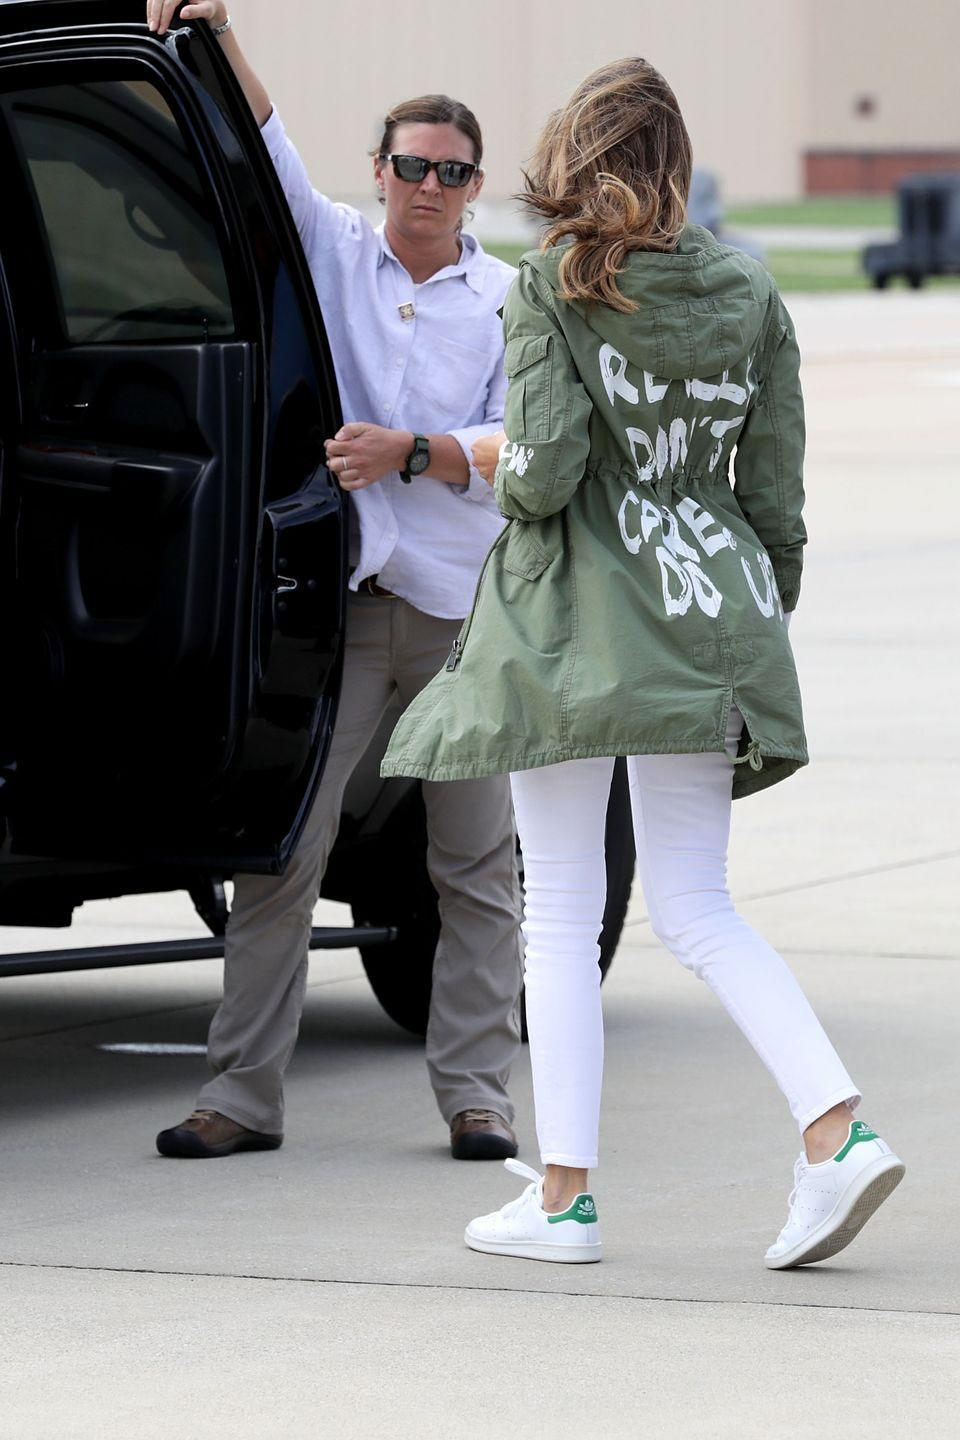 "<p>It's safe to say this is probably the most talked-about first lady fashion moment of all time. Melania Trump wore this Zara jacket which read, ""I REALLY DON'T CARE, DO U?,"" when visiting separated families at the U.S. Mexico border in June 2018. Some people thought it was a terrible fashion mistake, but President Trump confirmed on <a href=""https://twitter.com/realDonaldTrump/status/1009916650622251009"" rel=""nofollow noopener"" target=""_blank"" data-ylk=""slk:Twitter"" class=""link rapid-noclick-resp"">Twitter</a> that it was worn on purpose.</p>"